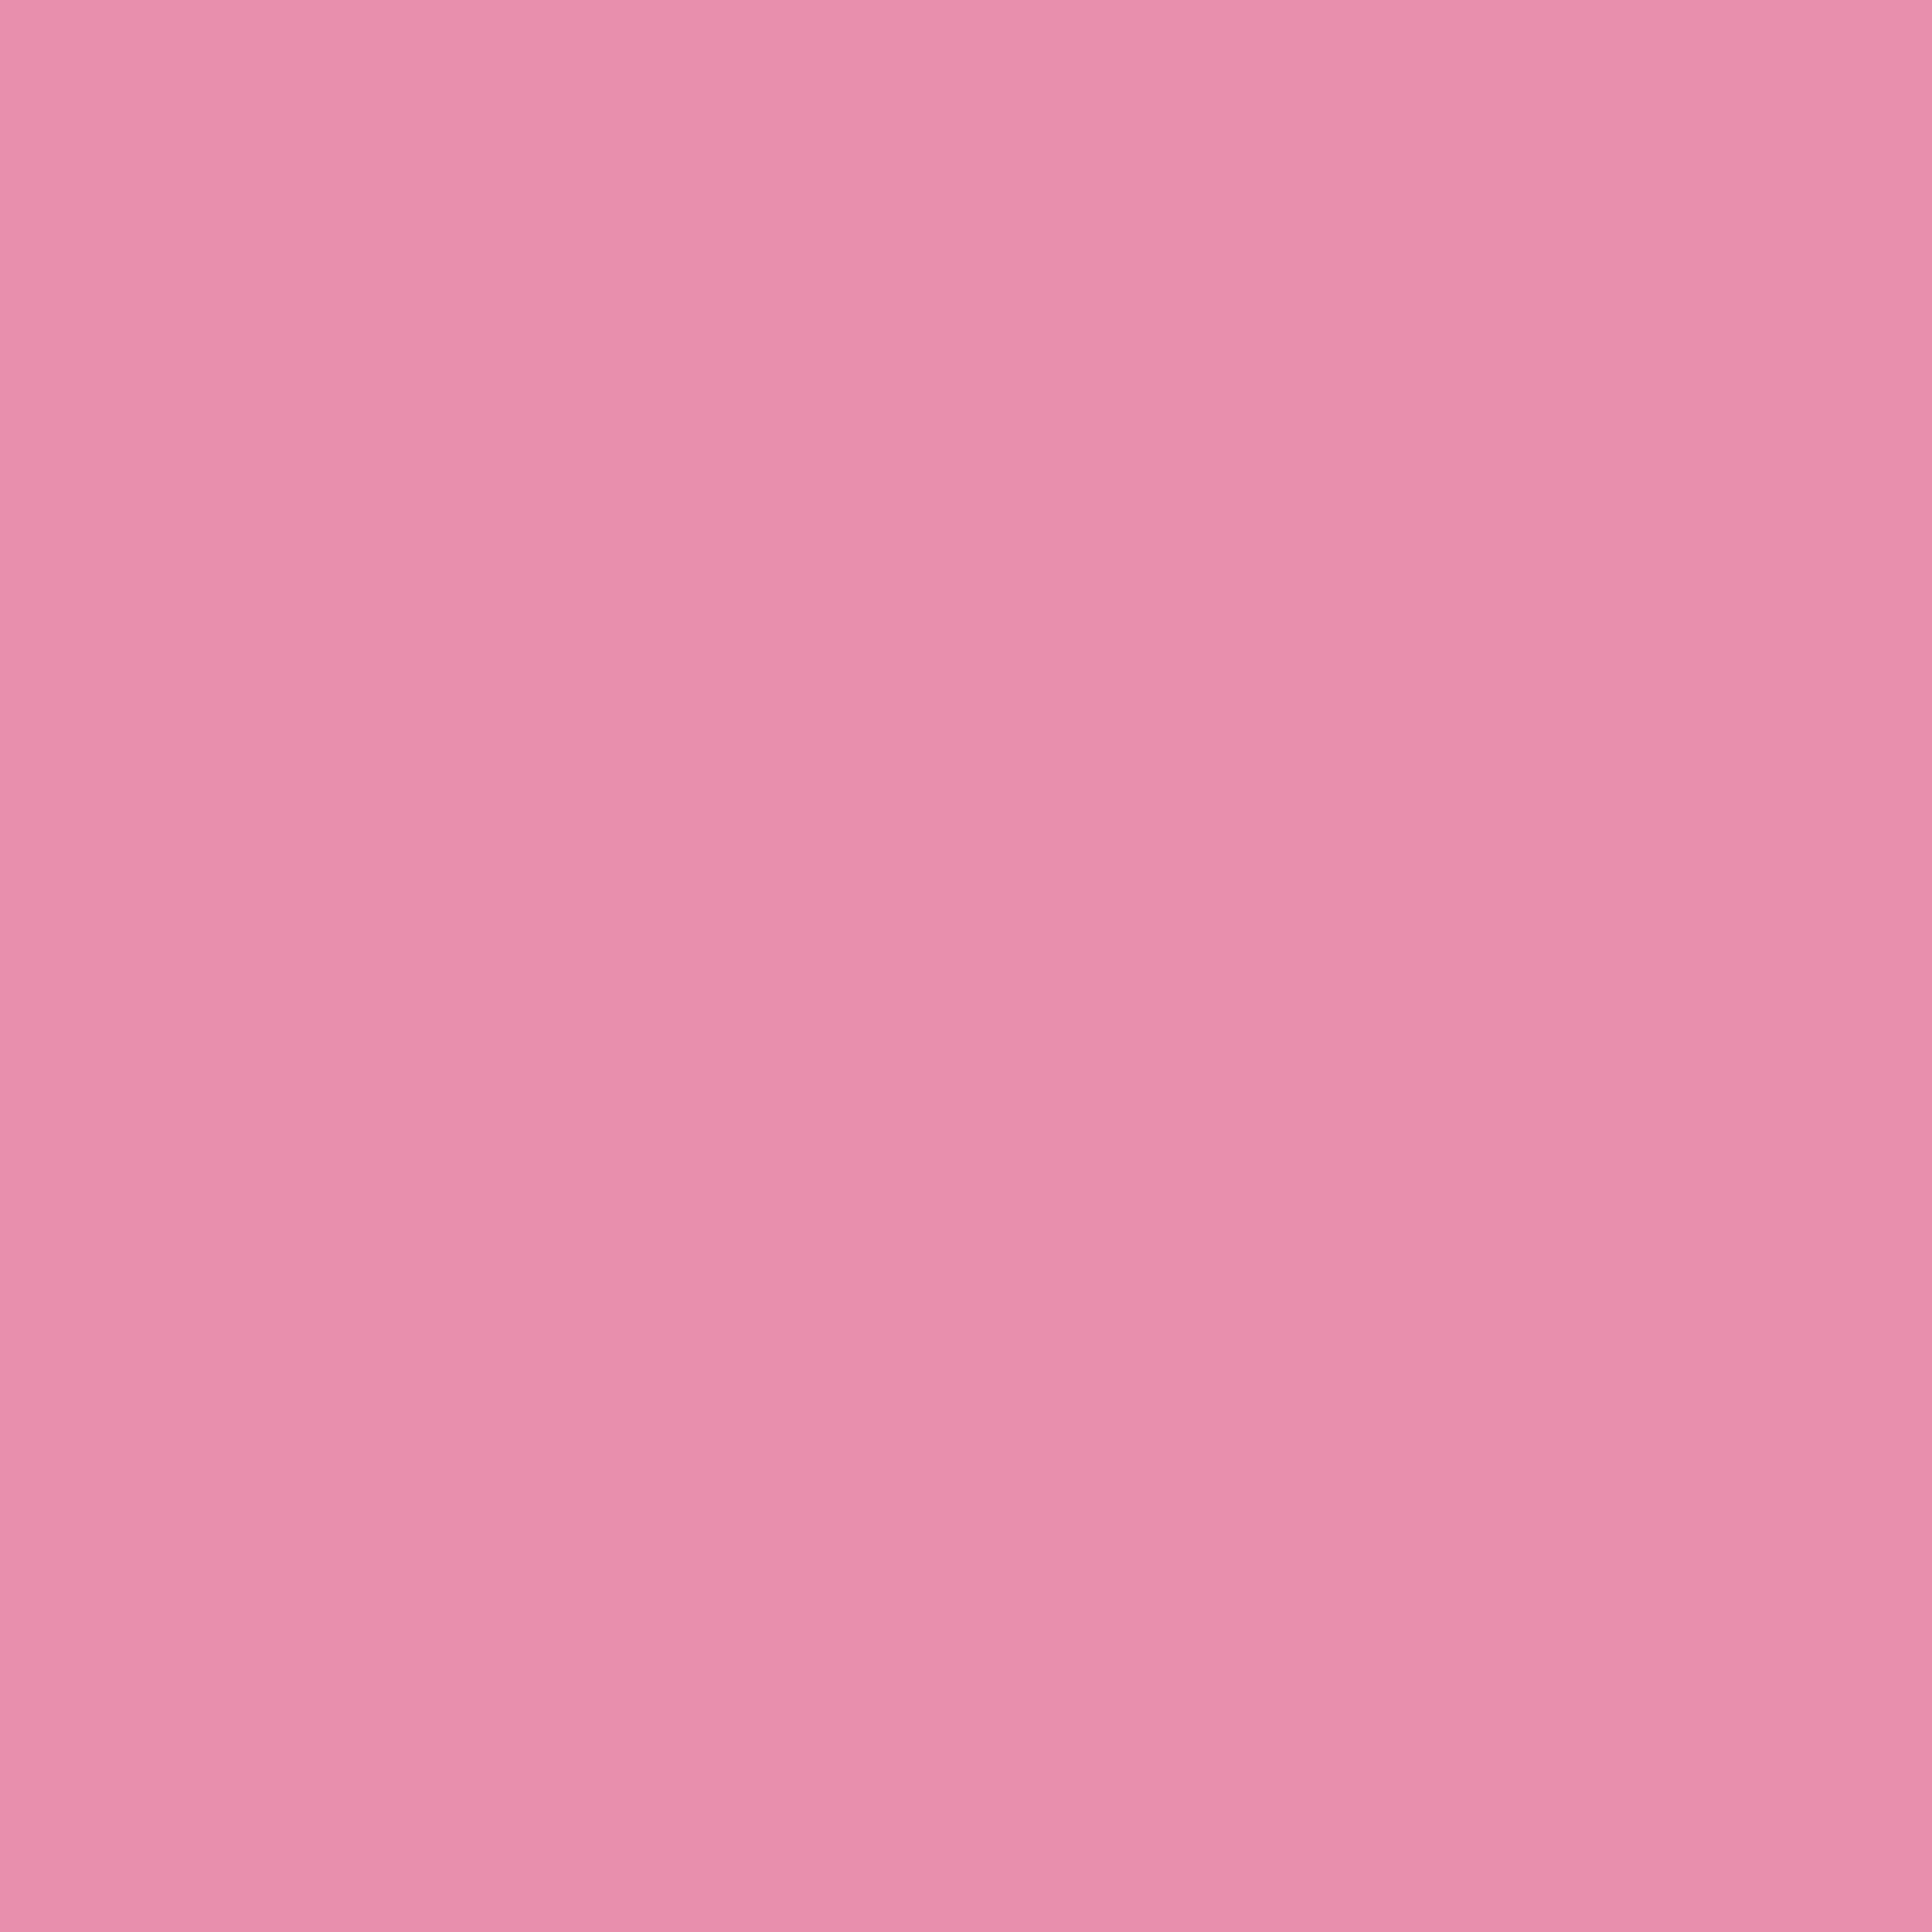 2732x2732 Charm Pink Solid Color Background 2732x2732